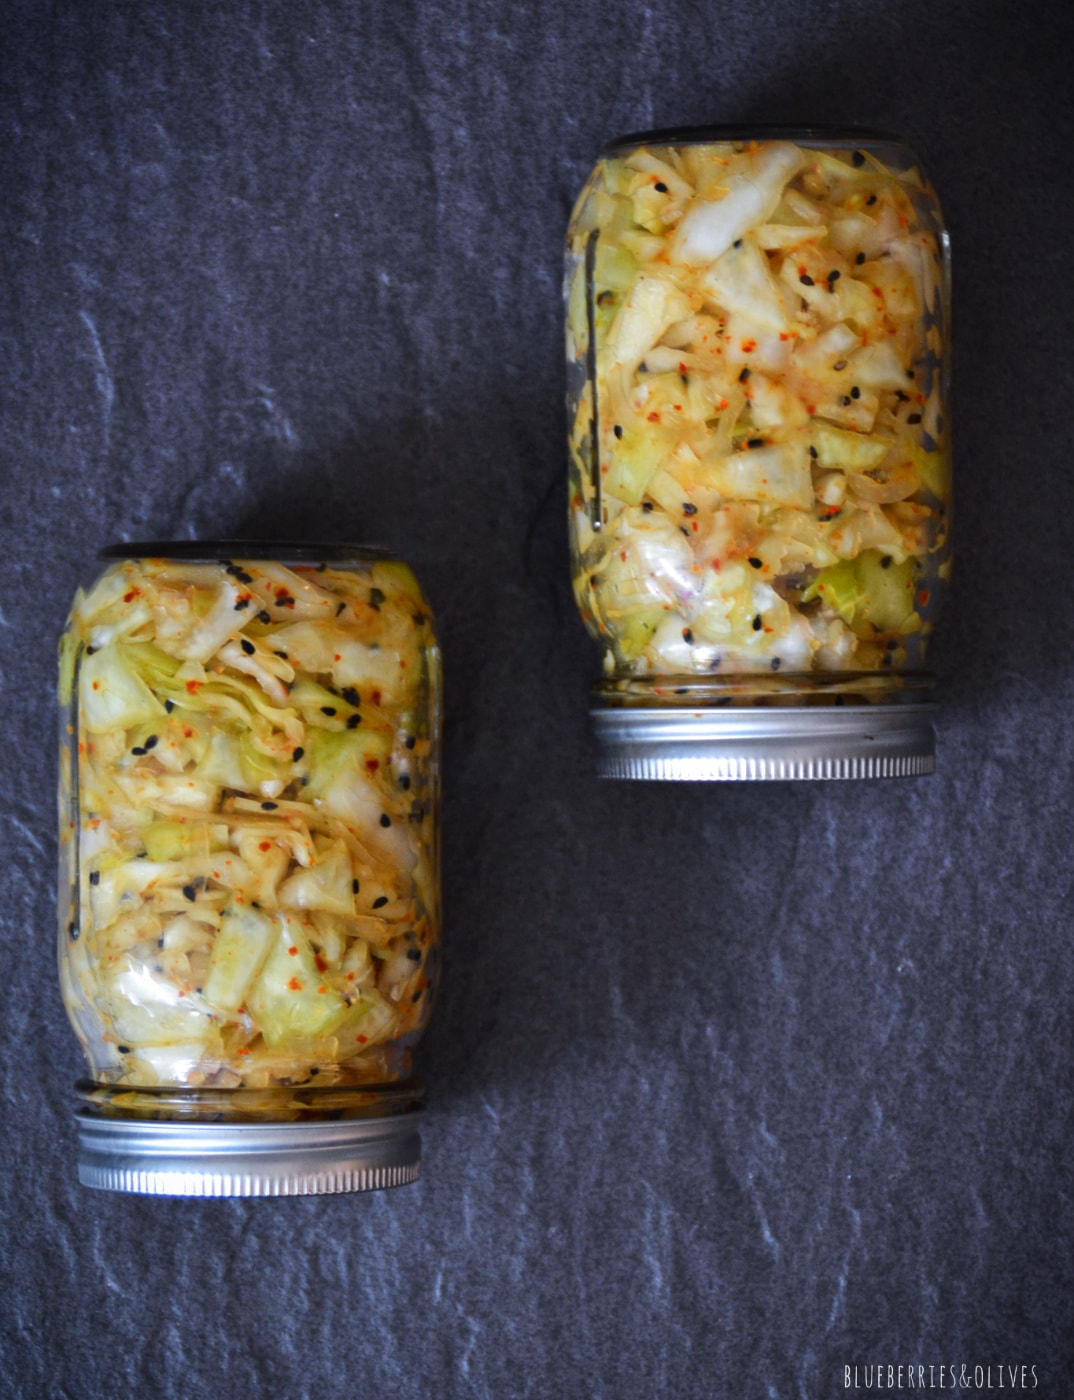 KIMCHI IN TWO GLASS JARS ON A DARK BACKGROUND